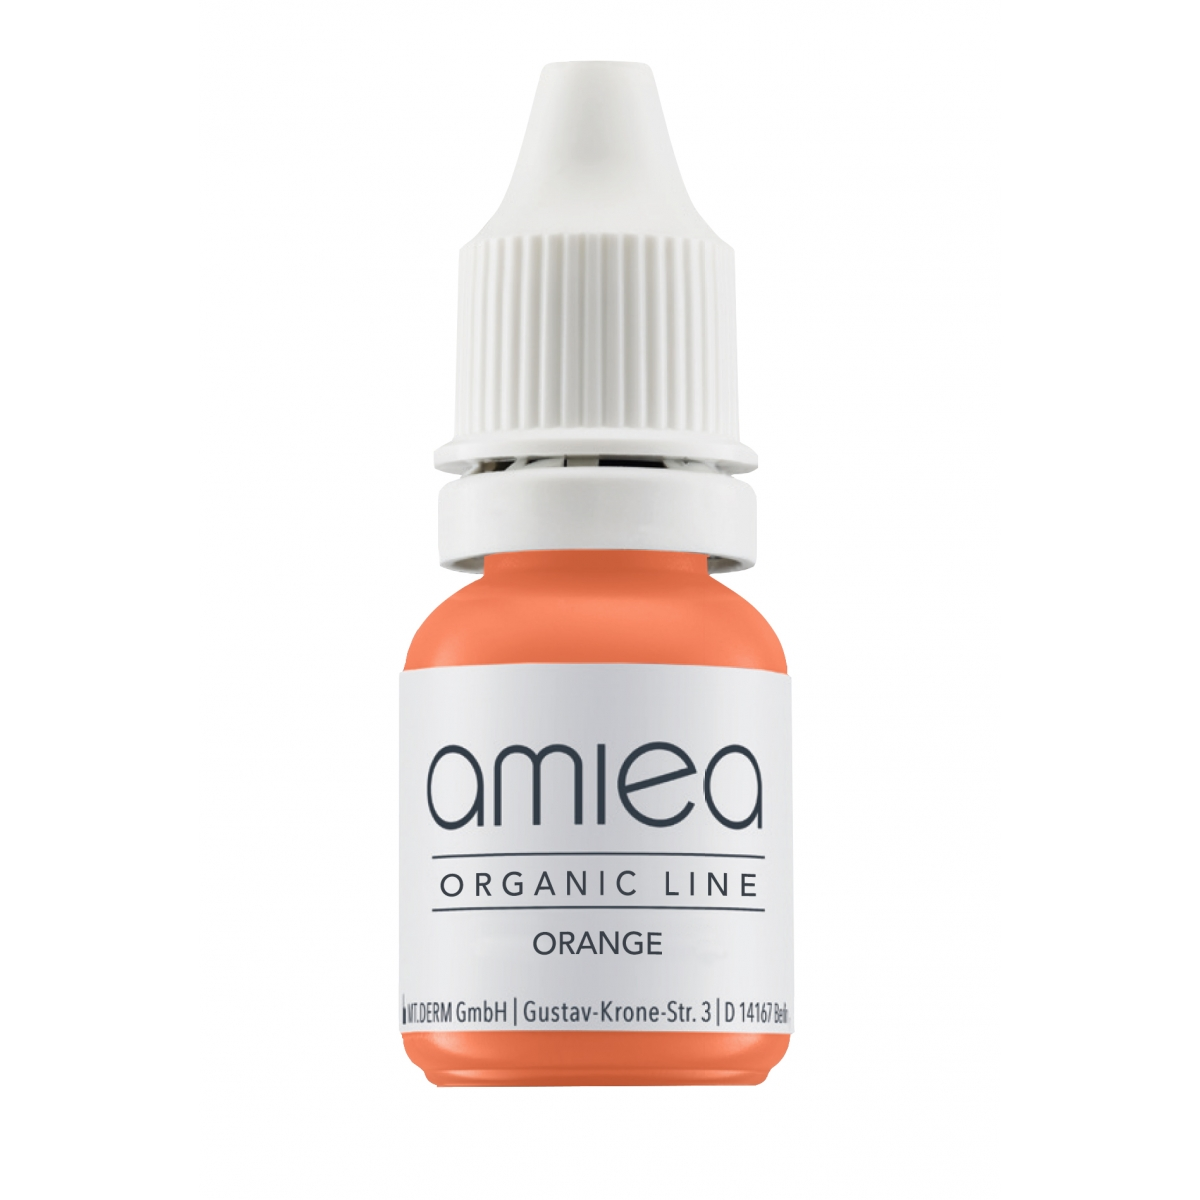 ORGANIC LINE (10ml) - PIGMENT CORRECTEUR ORANGE ORGANICLINE AMIEA (10 ml)